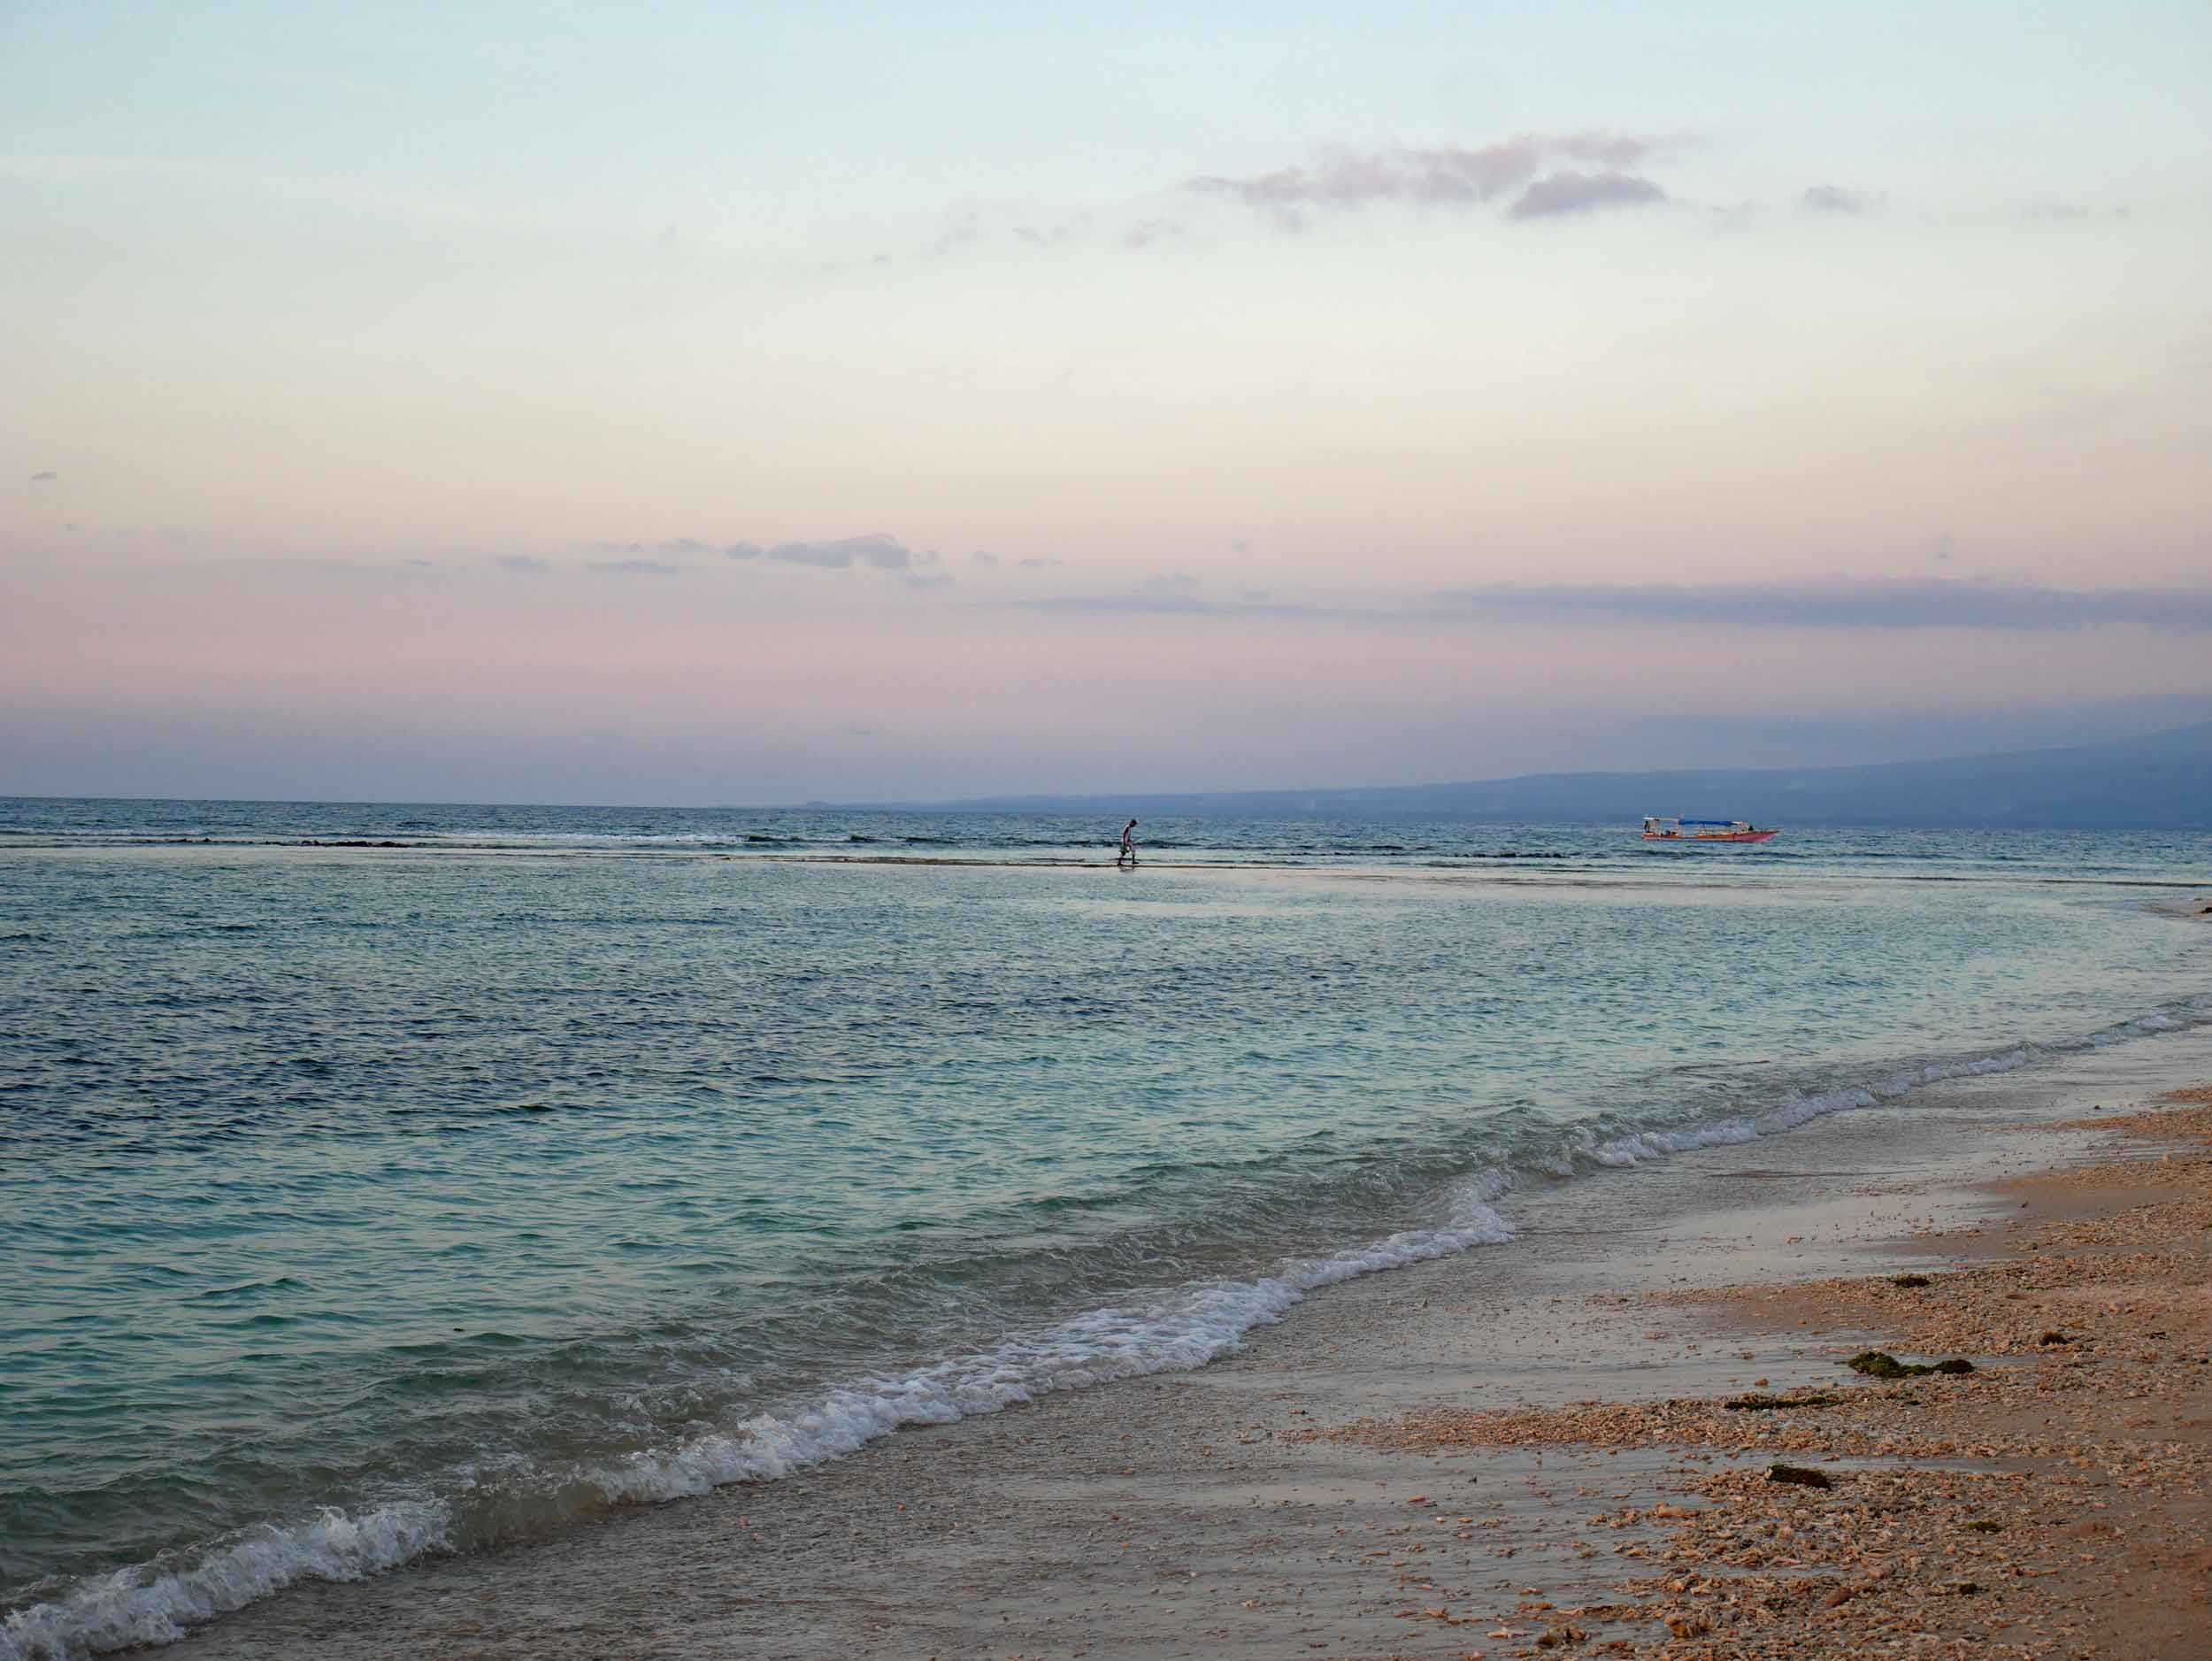 Sunset from the Gili Air coast, where a fisherman was taking advantage of the low tide to seemingly walk on water.